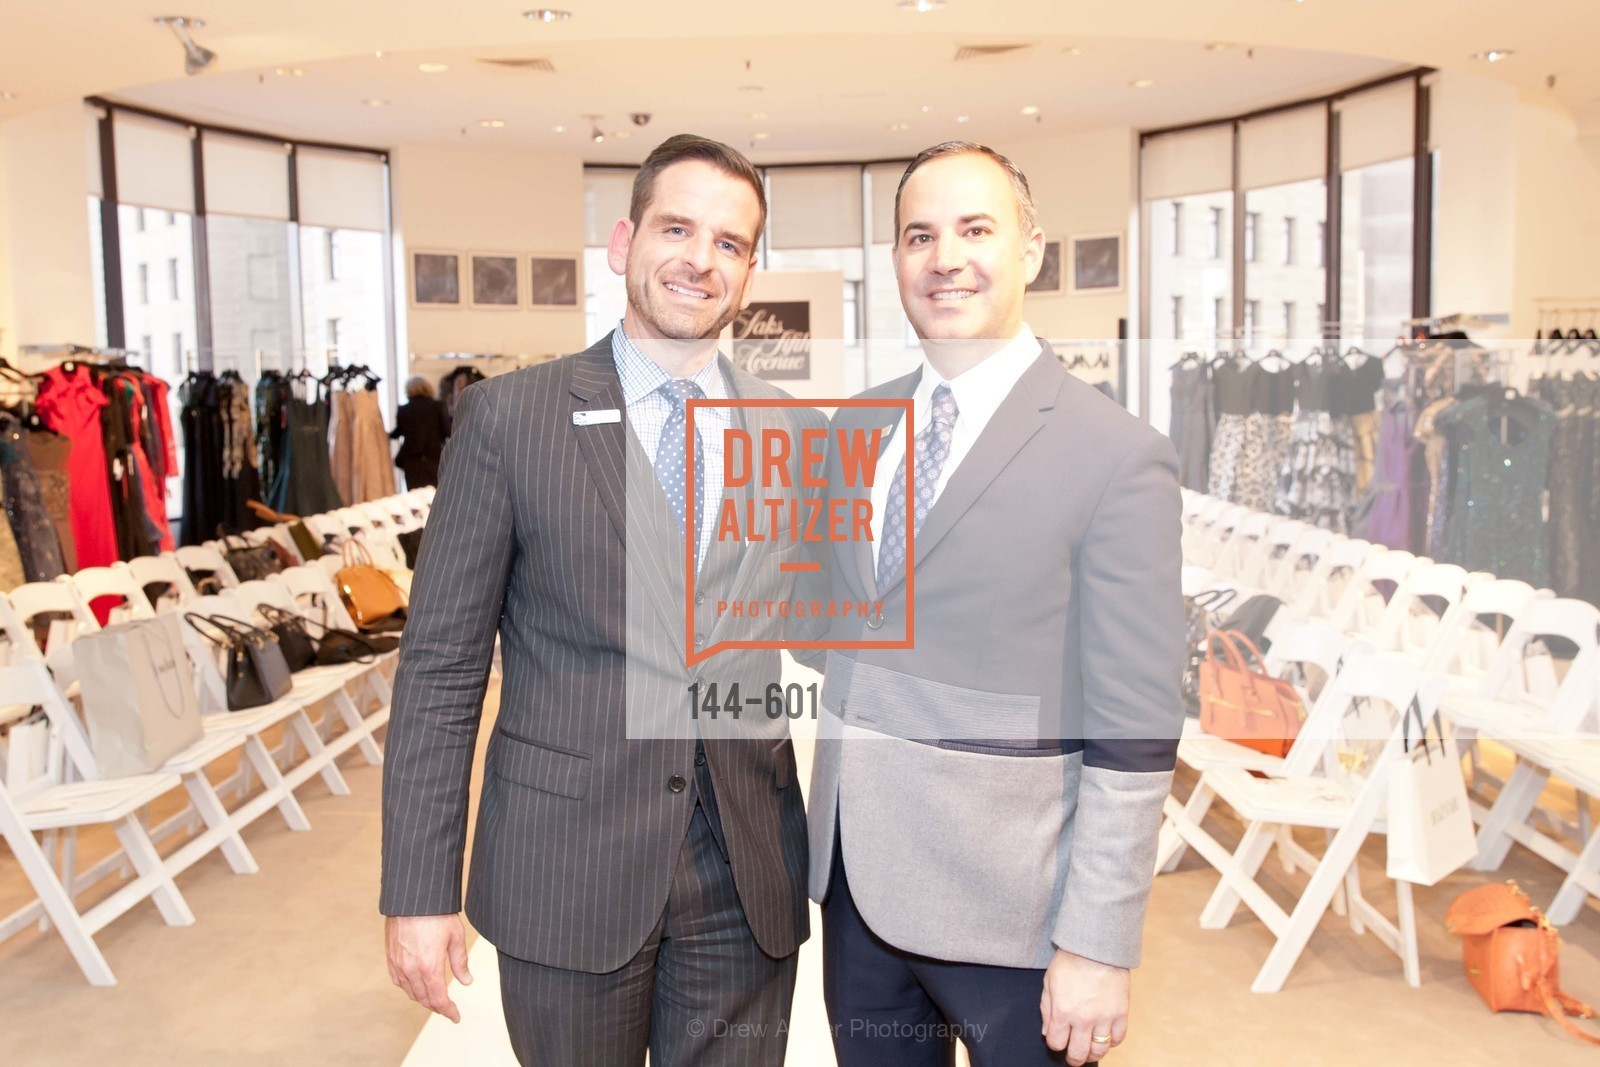 Ryan Williams, Robert Arnold-Kraft, SAKS FIFTH AVENUE and HARPER'S BAZAAR Host the San Francisco Yacht Club, US, October 8th, 2014,Drew Altizer, Drew Altizer Photography, full-service agency, private events, San Francisco photographer, photographer california